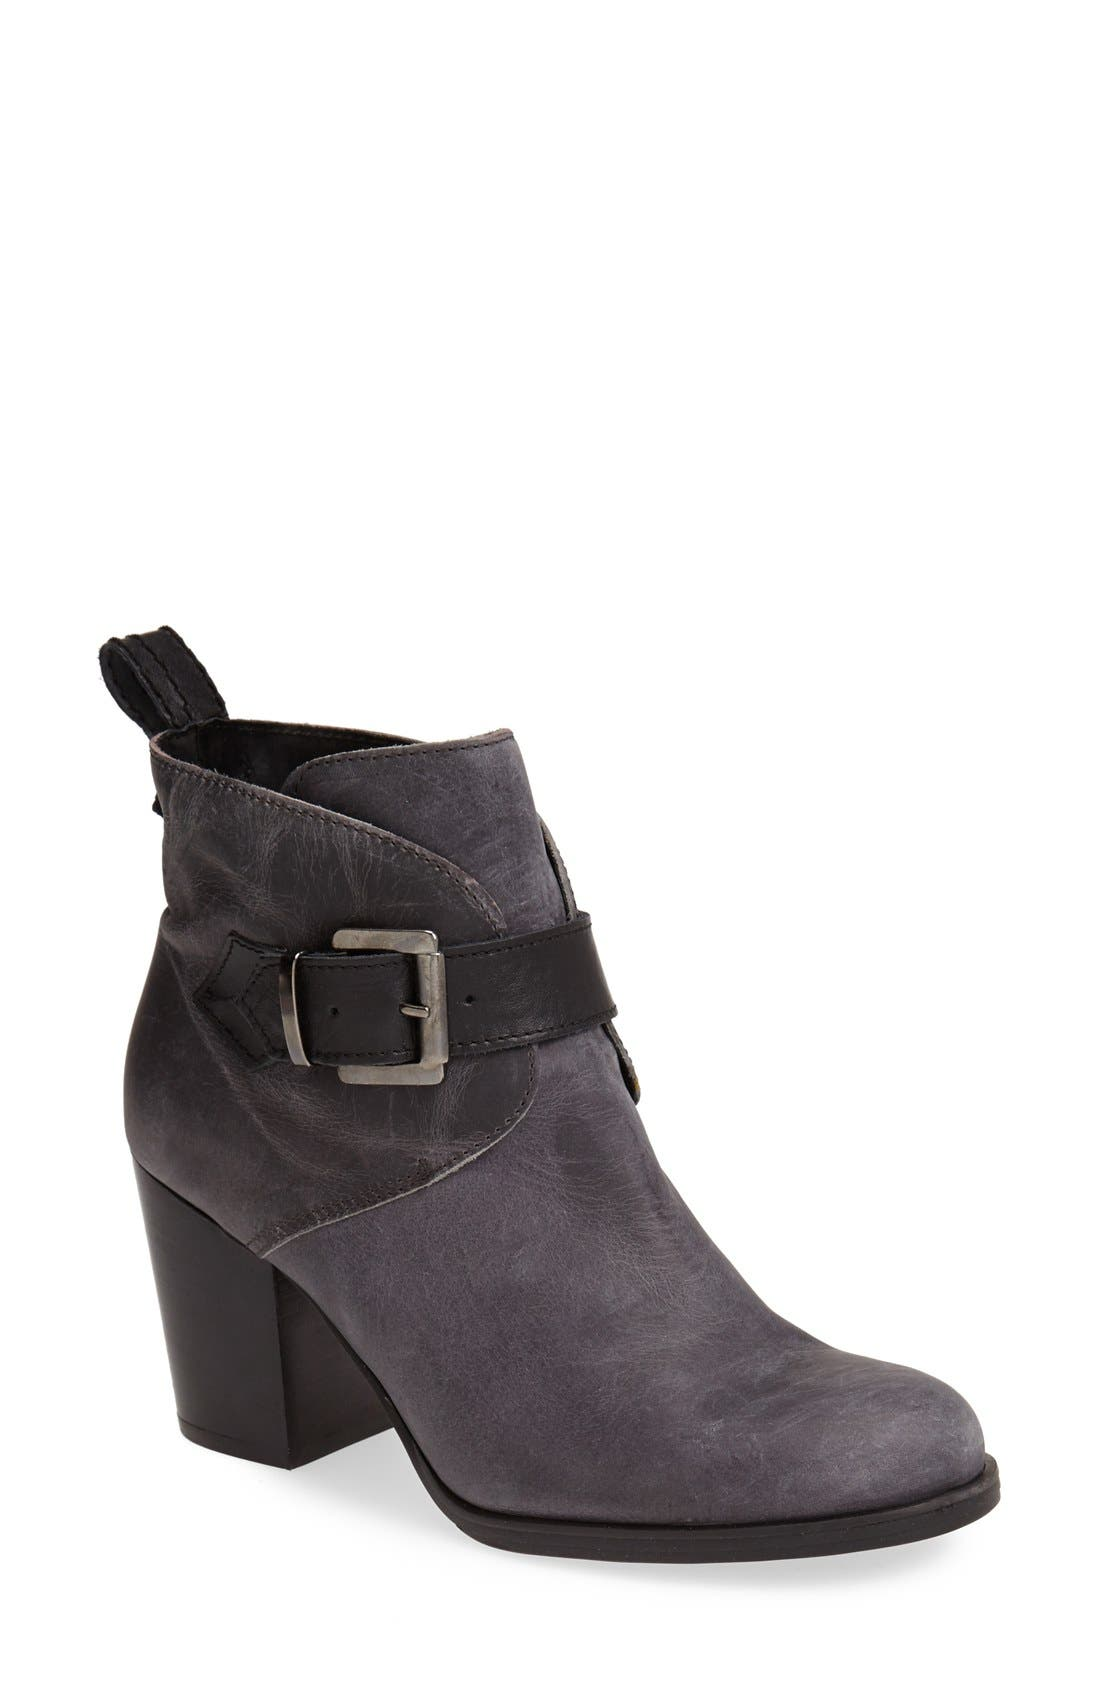 Main Image - Charles David 'Celo' Ankle Boot (Women)